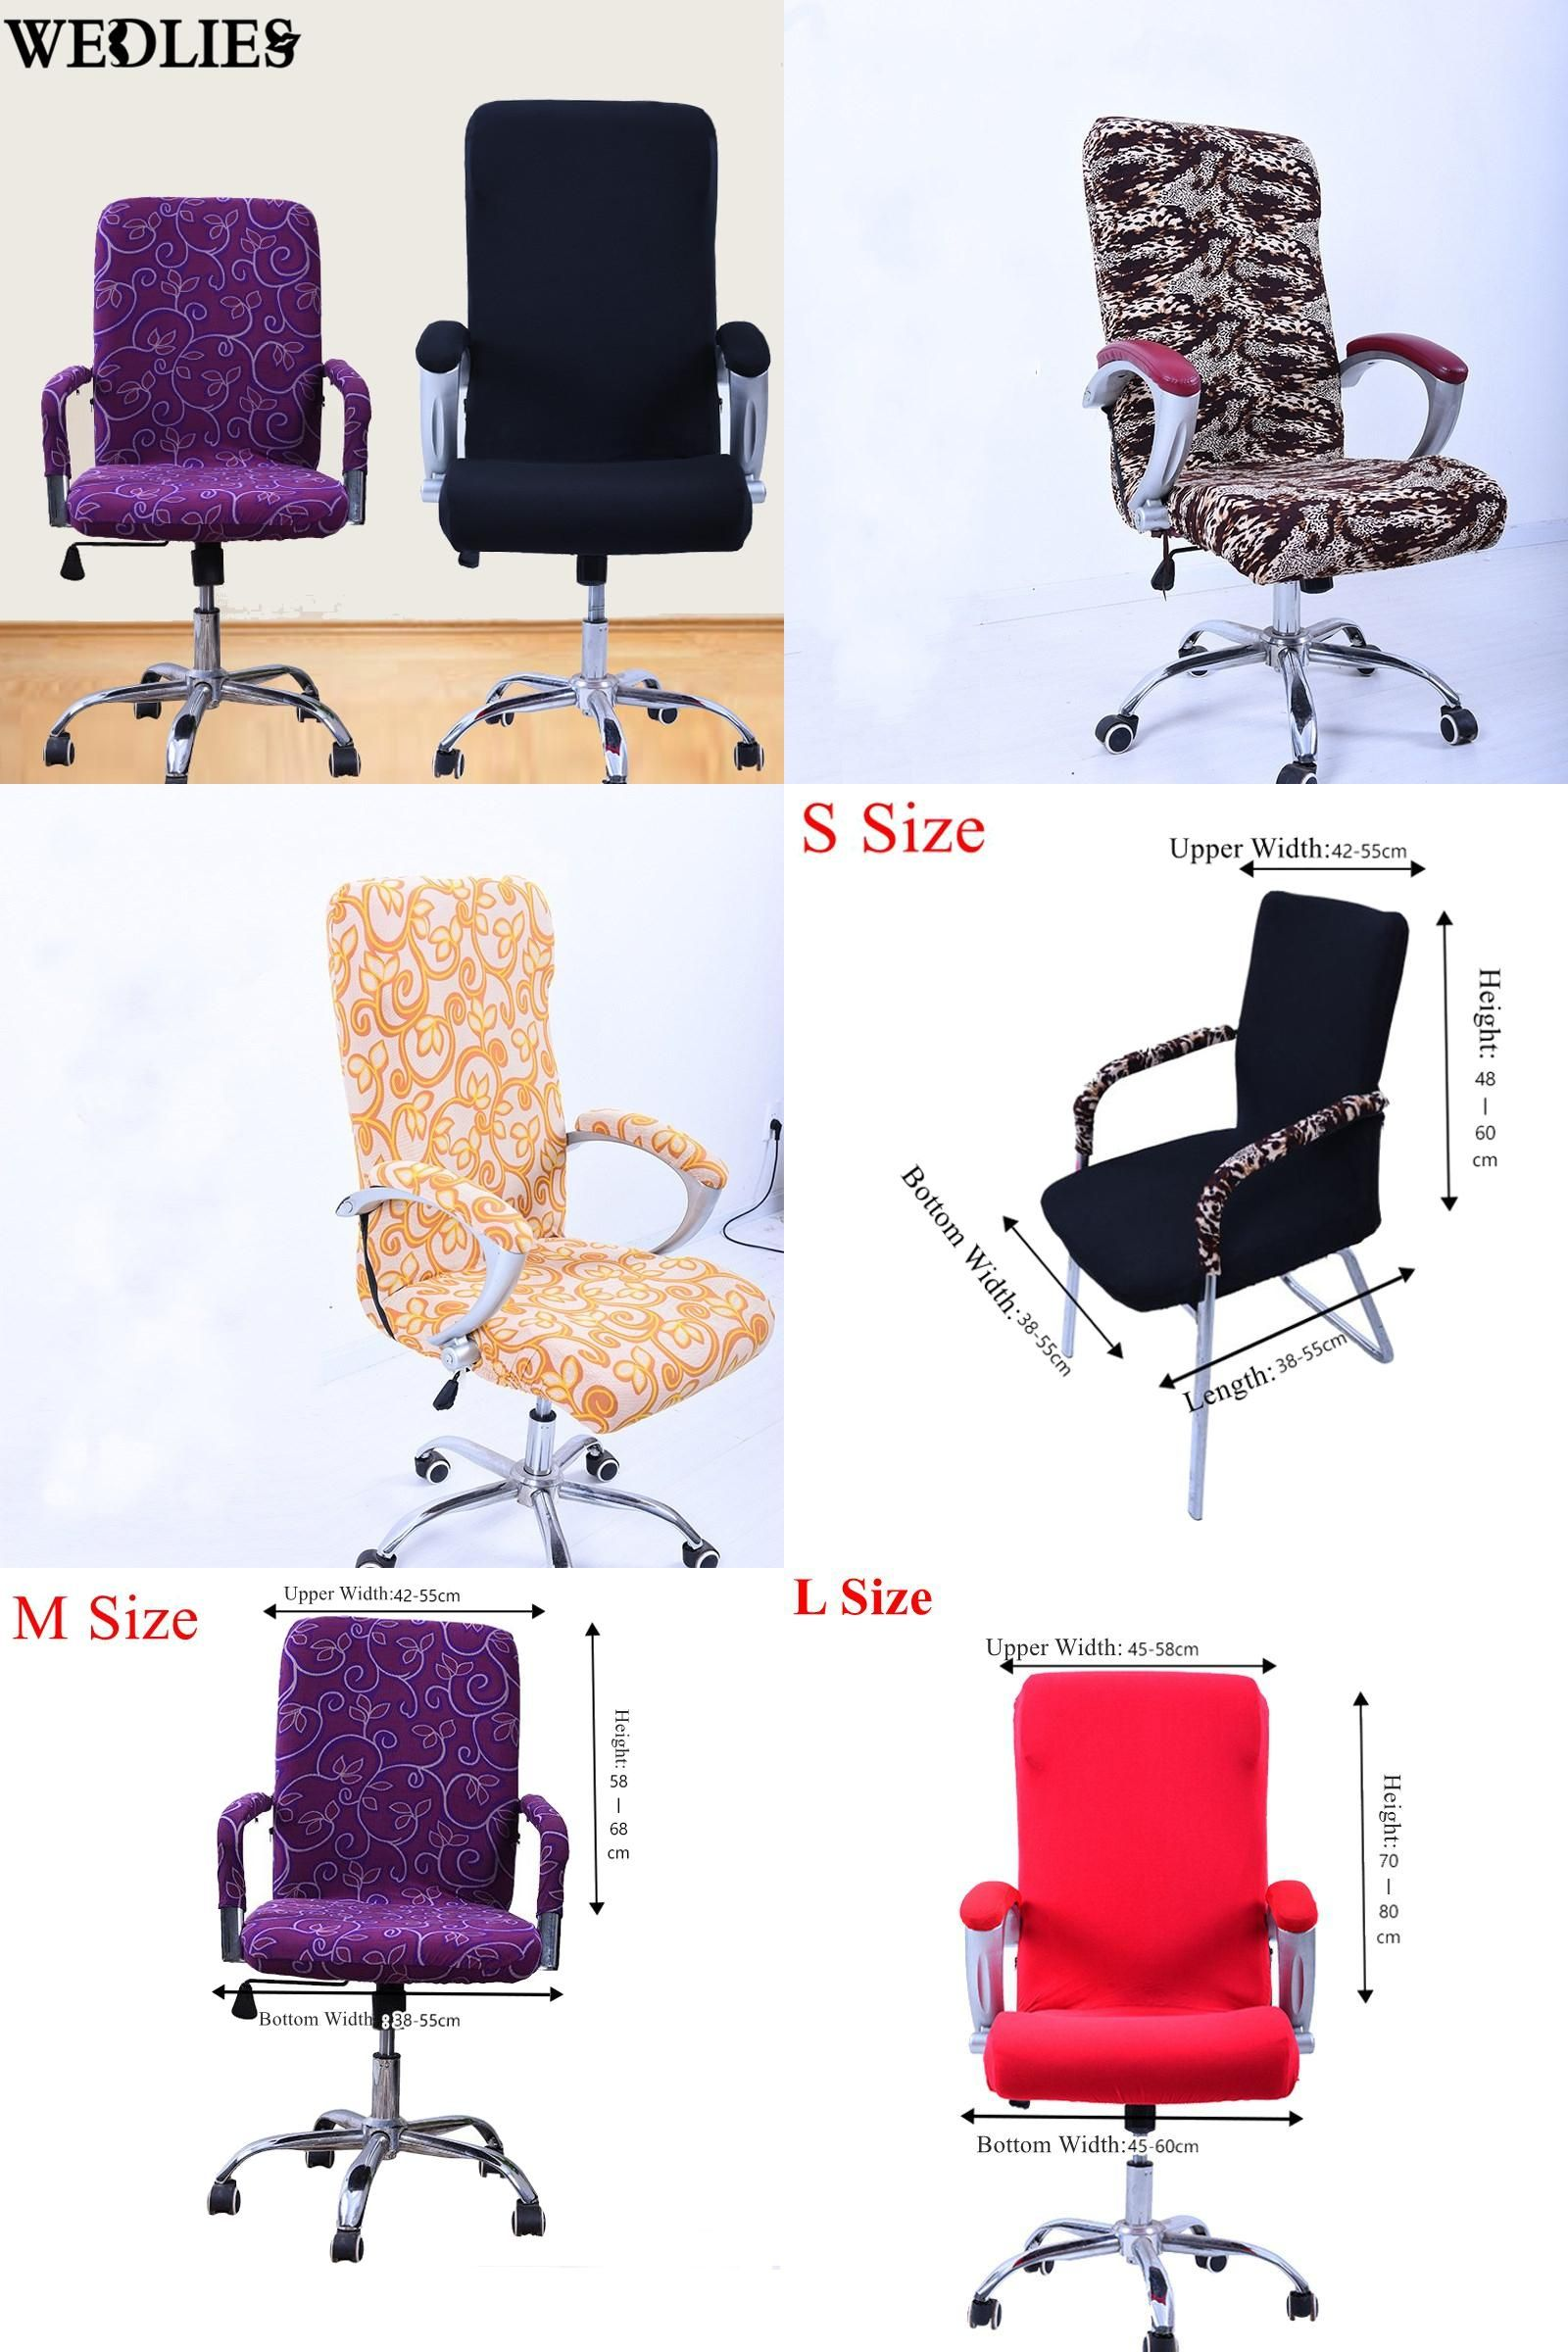 Office Chair Covers To Buy Vibrating Sex Visit S M L Spandex Cover Slipcover Armrest